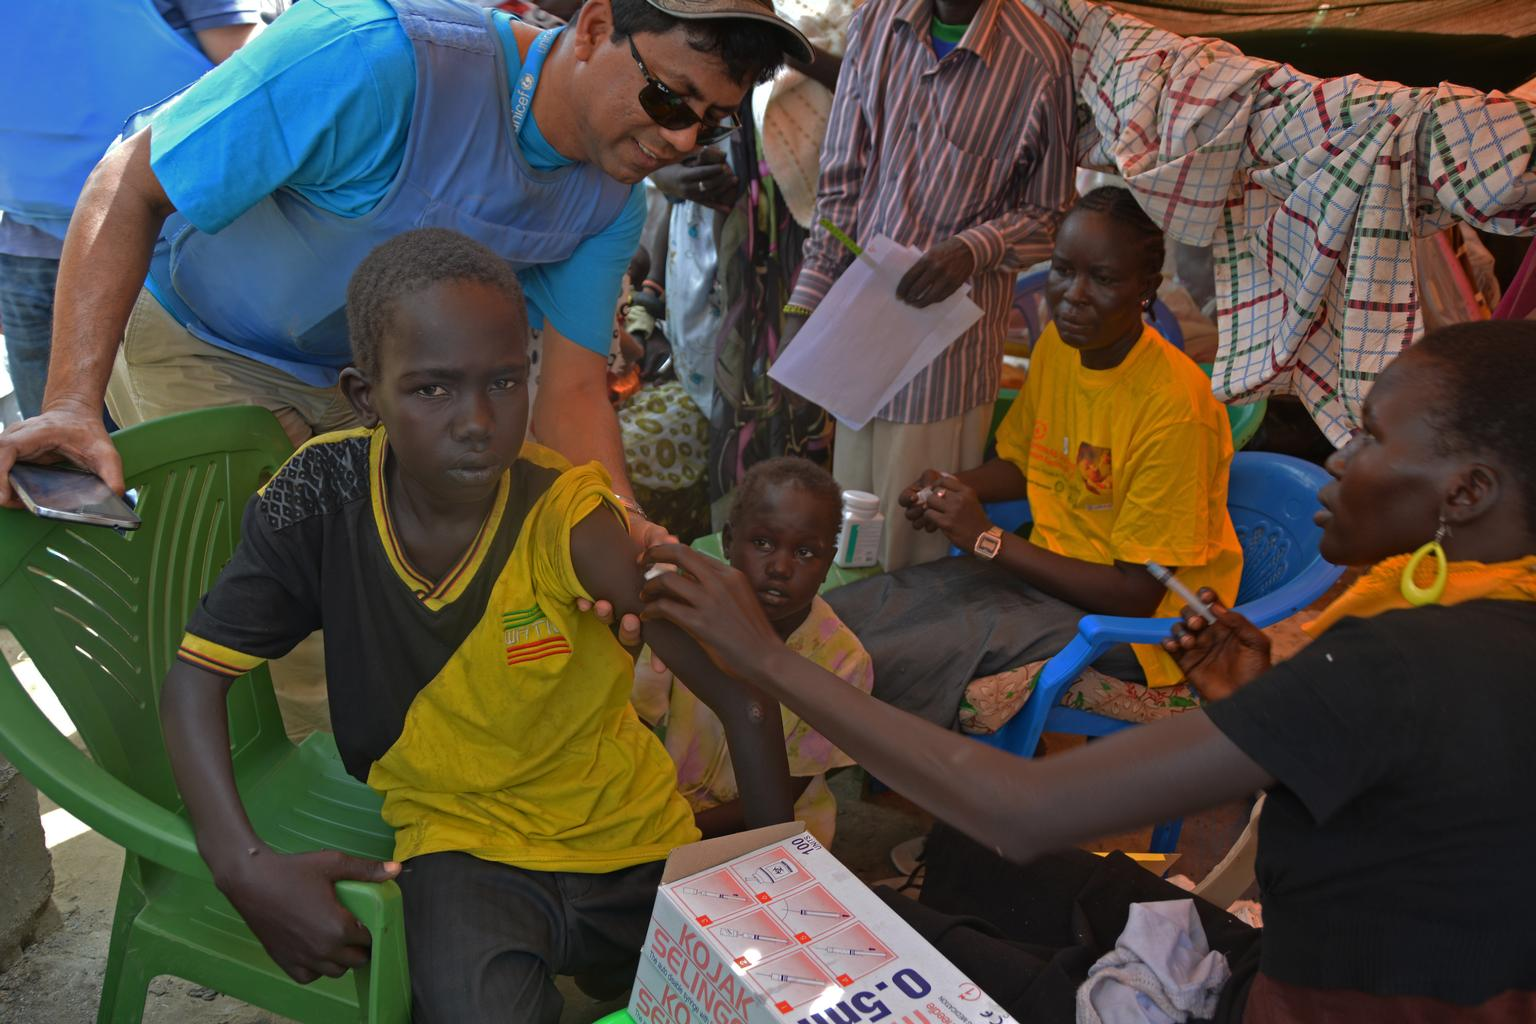 A health worker prepares to vaccinate a boy against measles, outside Bor, the capital of Jonglei State.